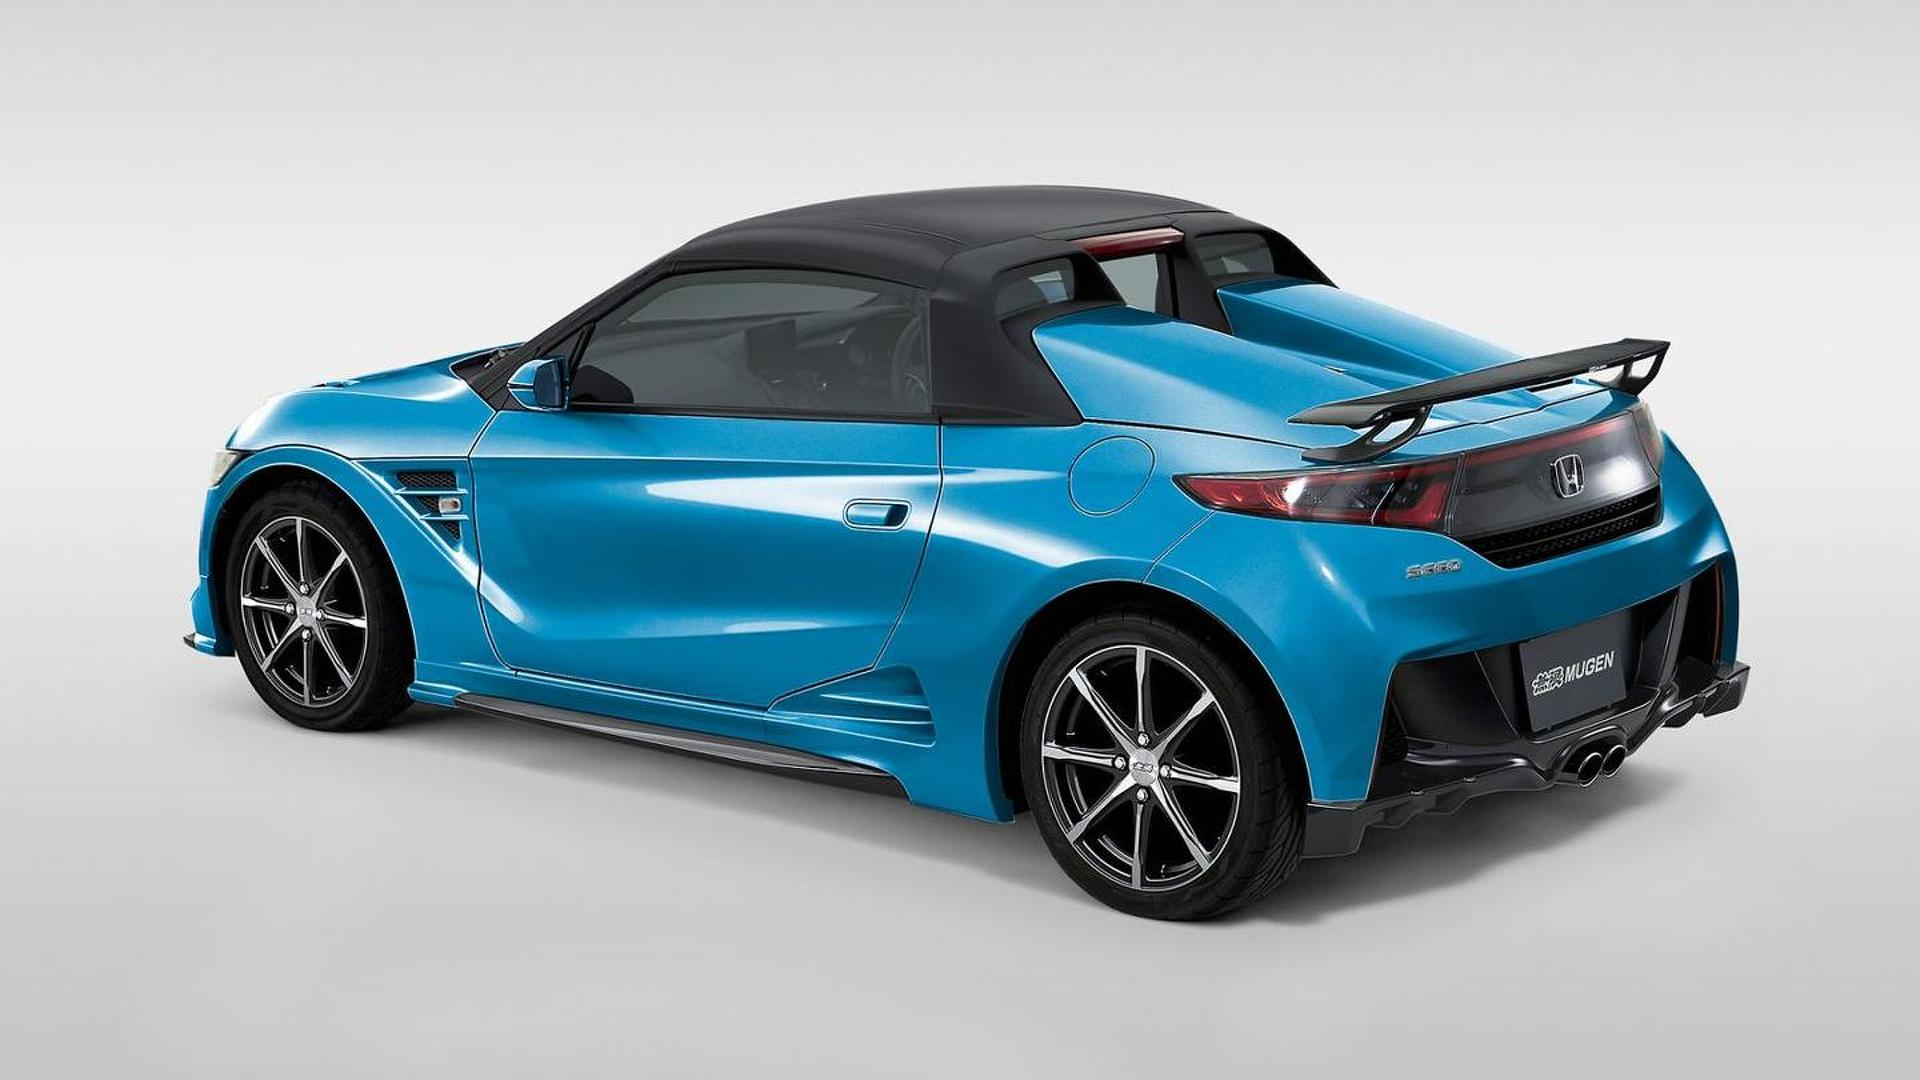 Honda S660 For Sale In Usa >> Honda S660 Type R And S1000 Reportedly Approved For Production